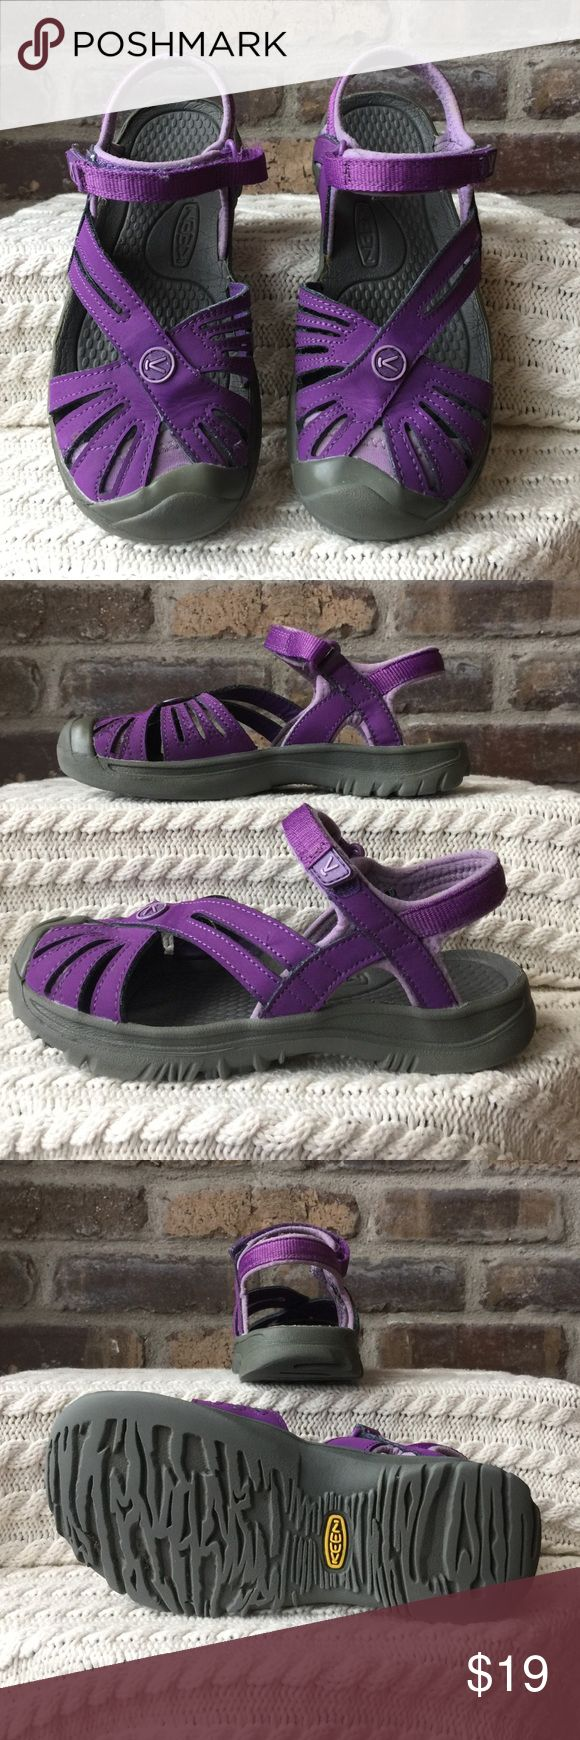 Keen Sandals Girls size 2 Keen purple sandals. They have been worn but are still in good condition. Keen Shoes Sandals & Flip Flops